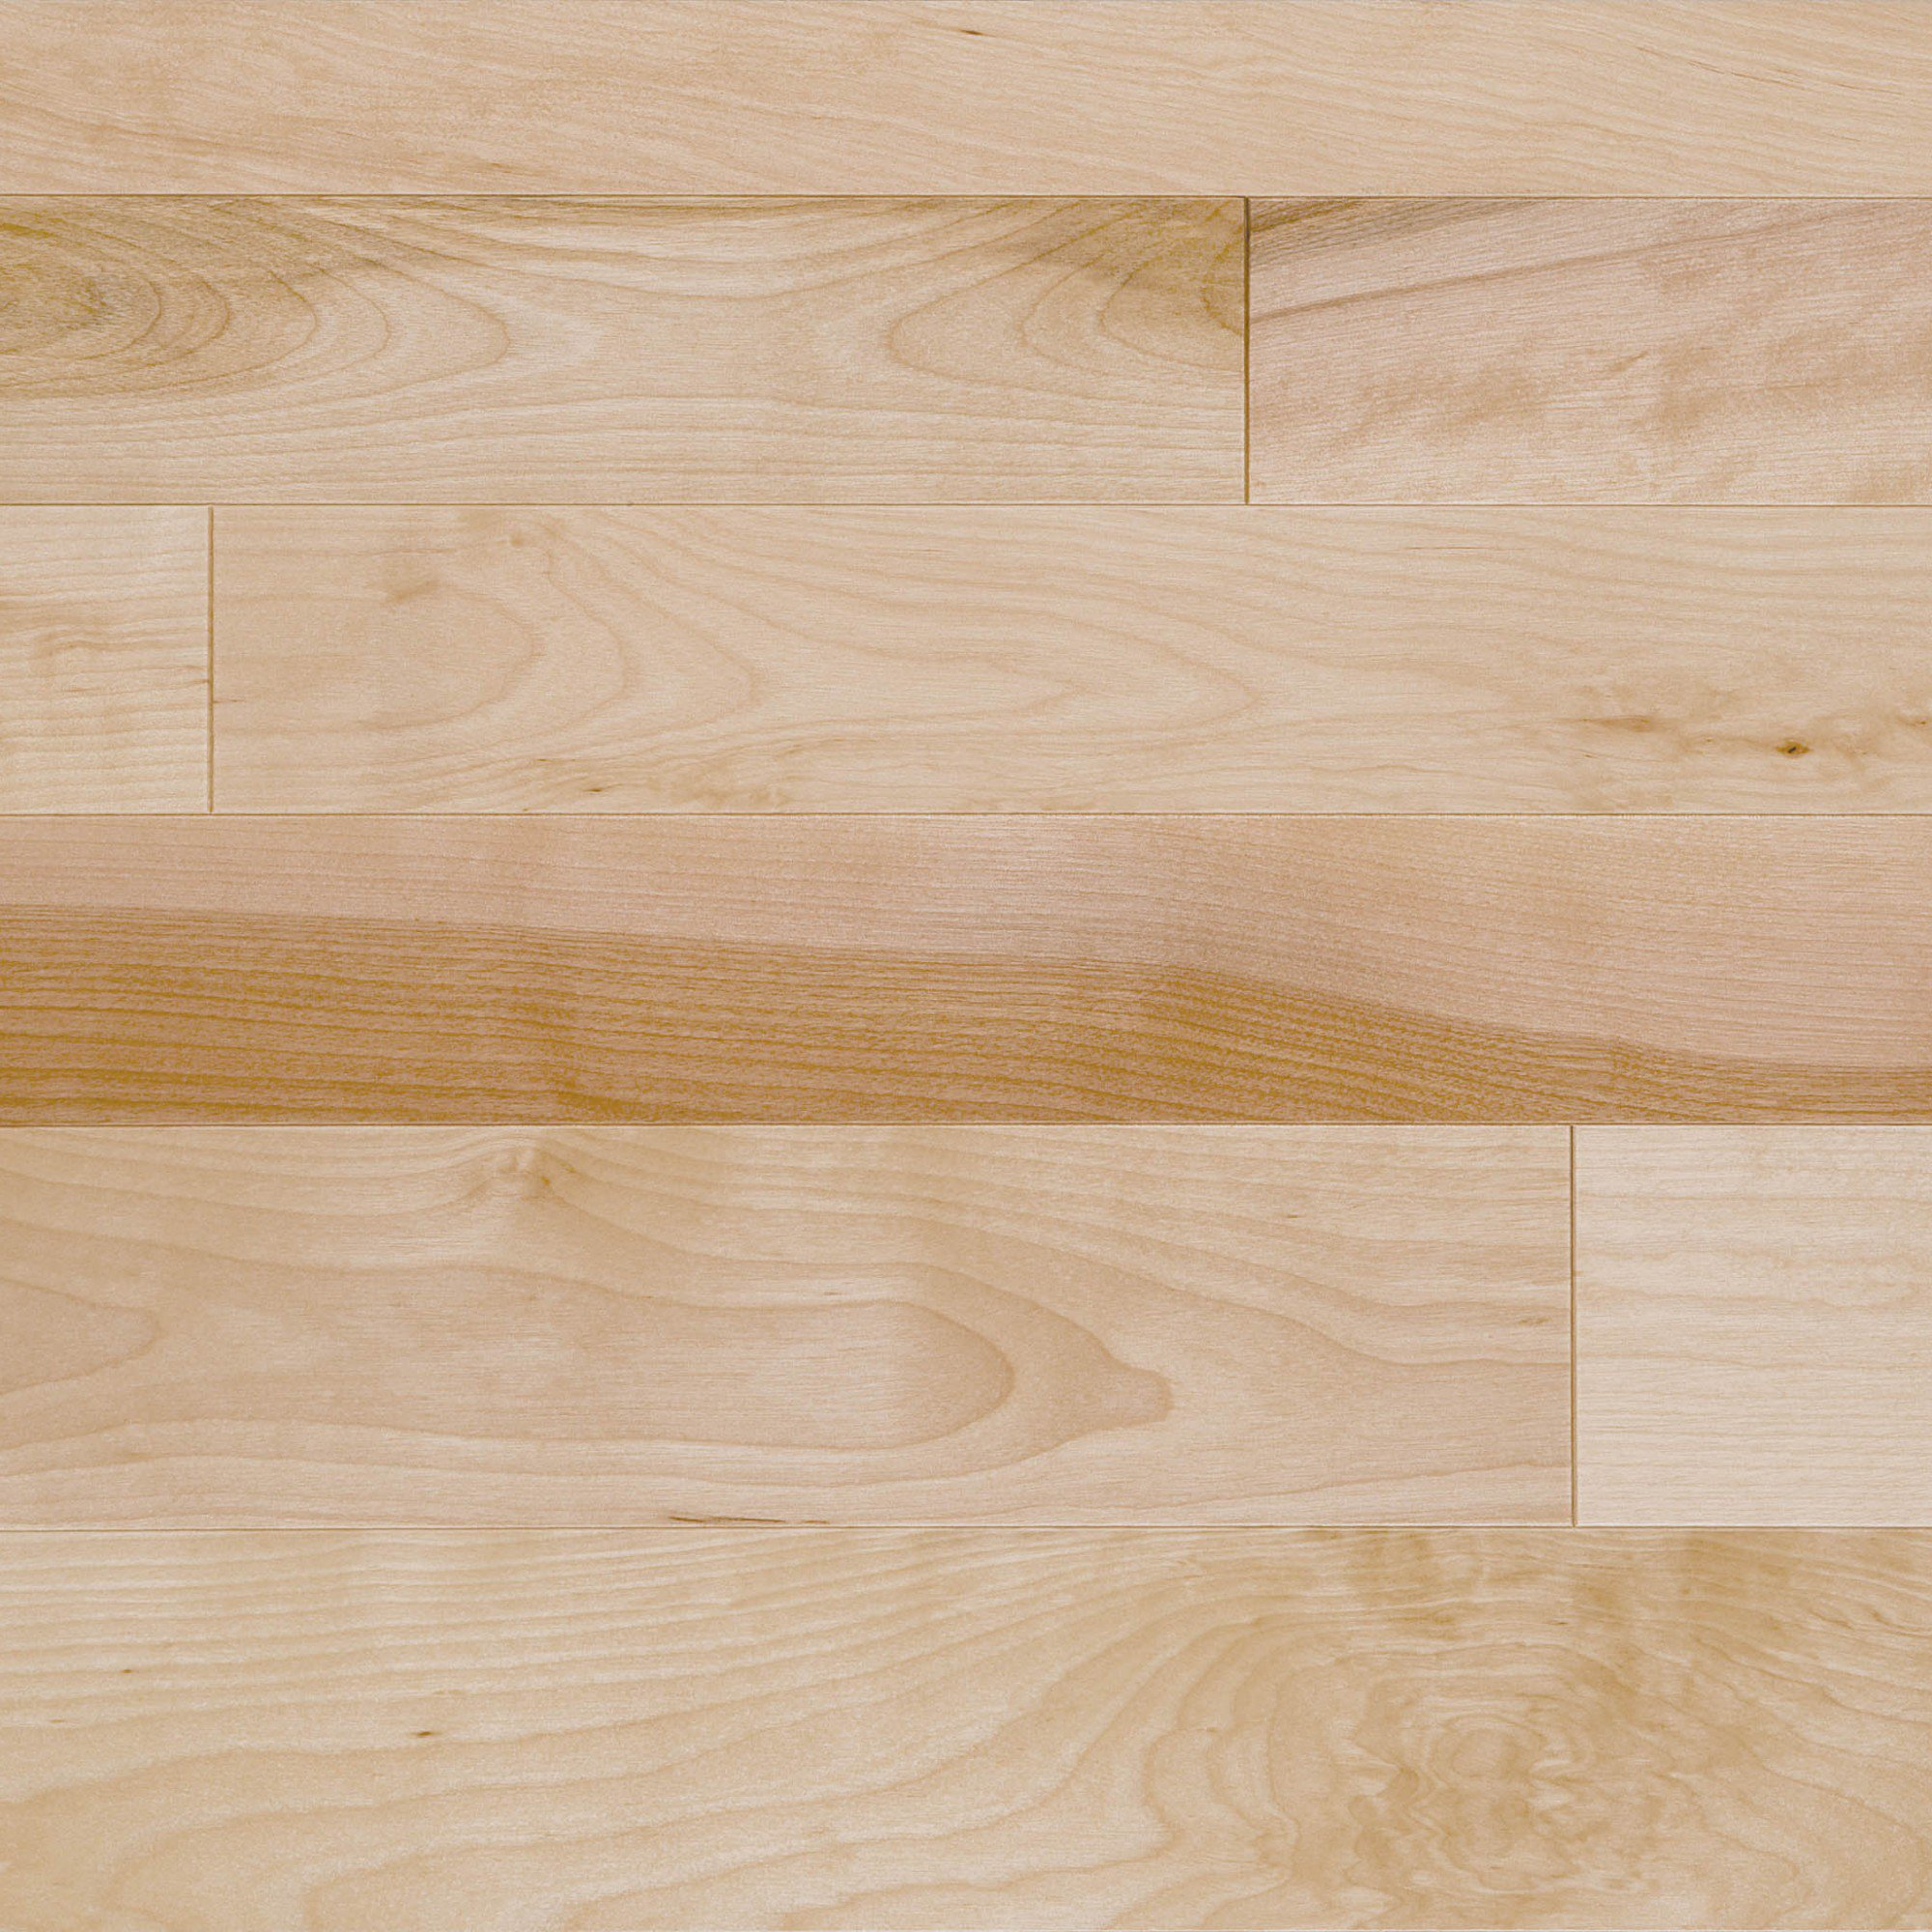 Natural yellow birch exclusive mirage hardwood floors for Birch hardwood flooring